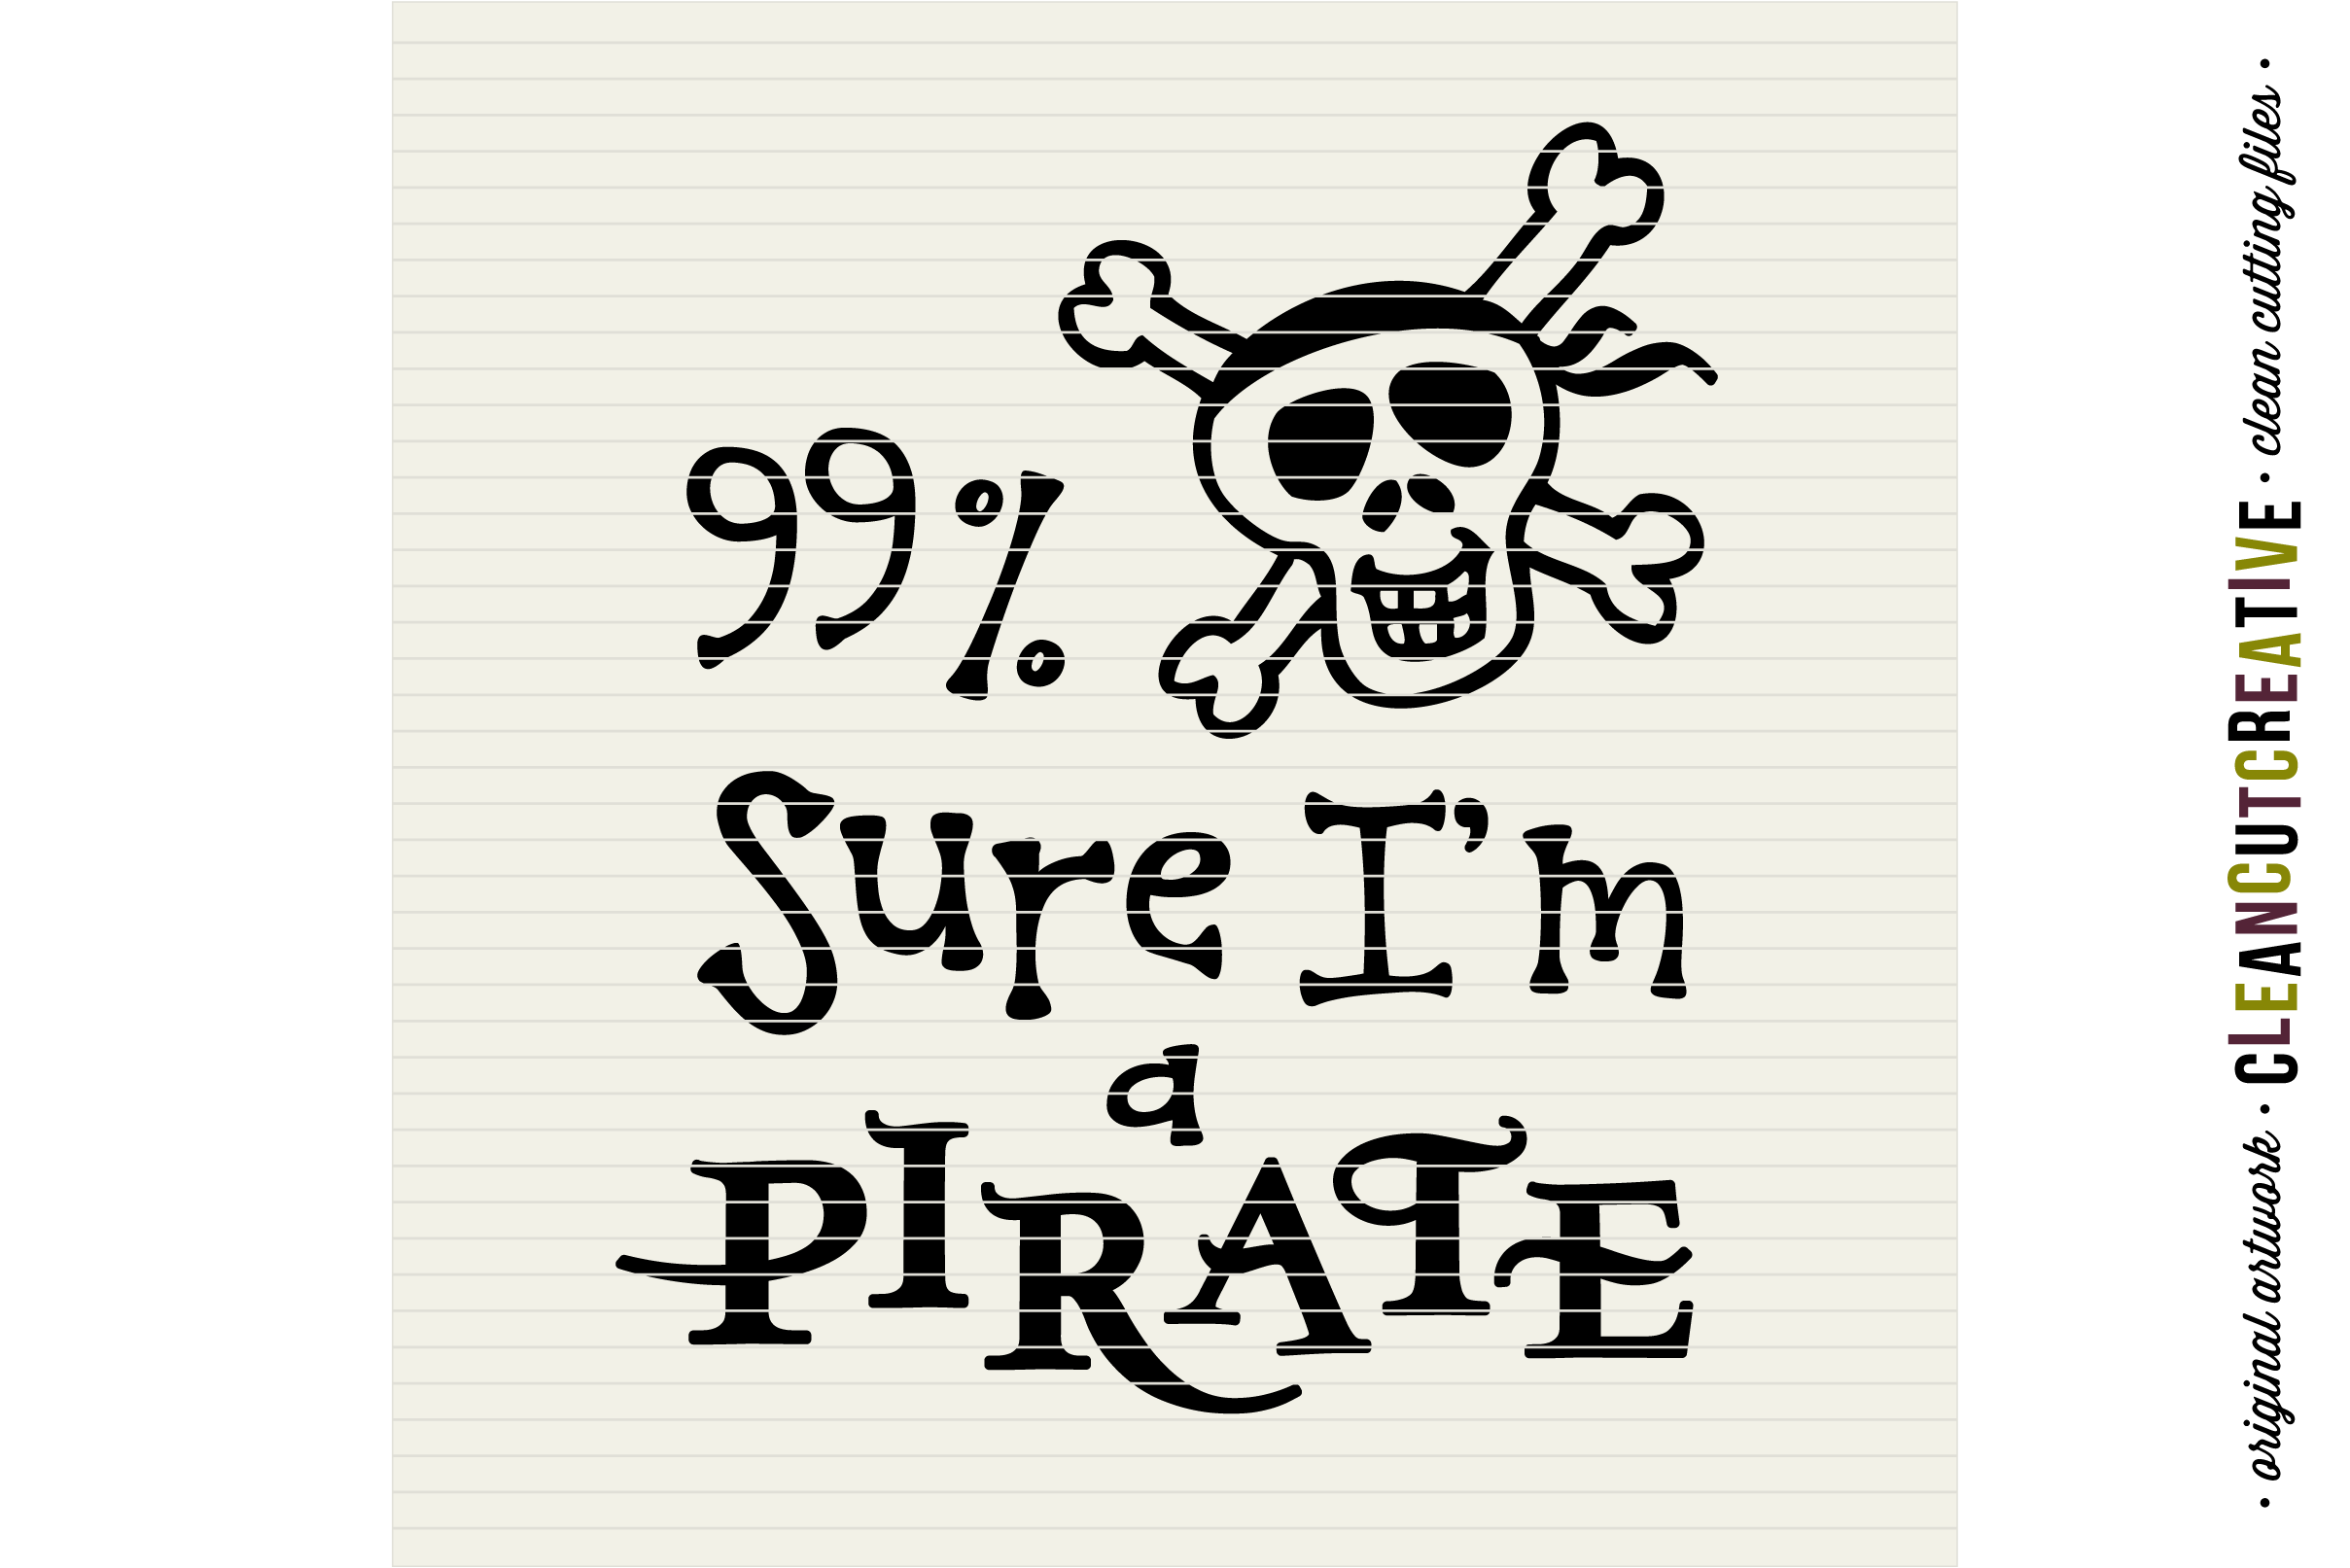 Funny Boys Quote 99% Sure I'm a Pirate - SVG DXF EPS PNG- Cricut and Silhouette - clean cutting files example image 3